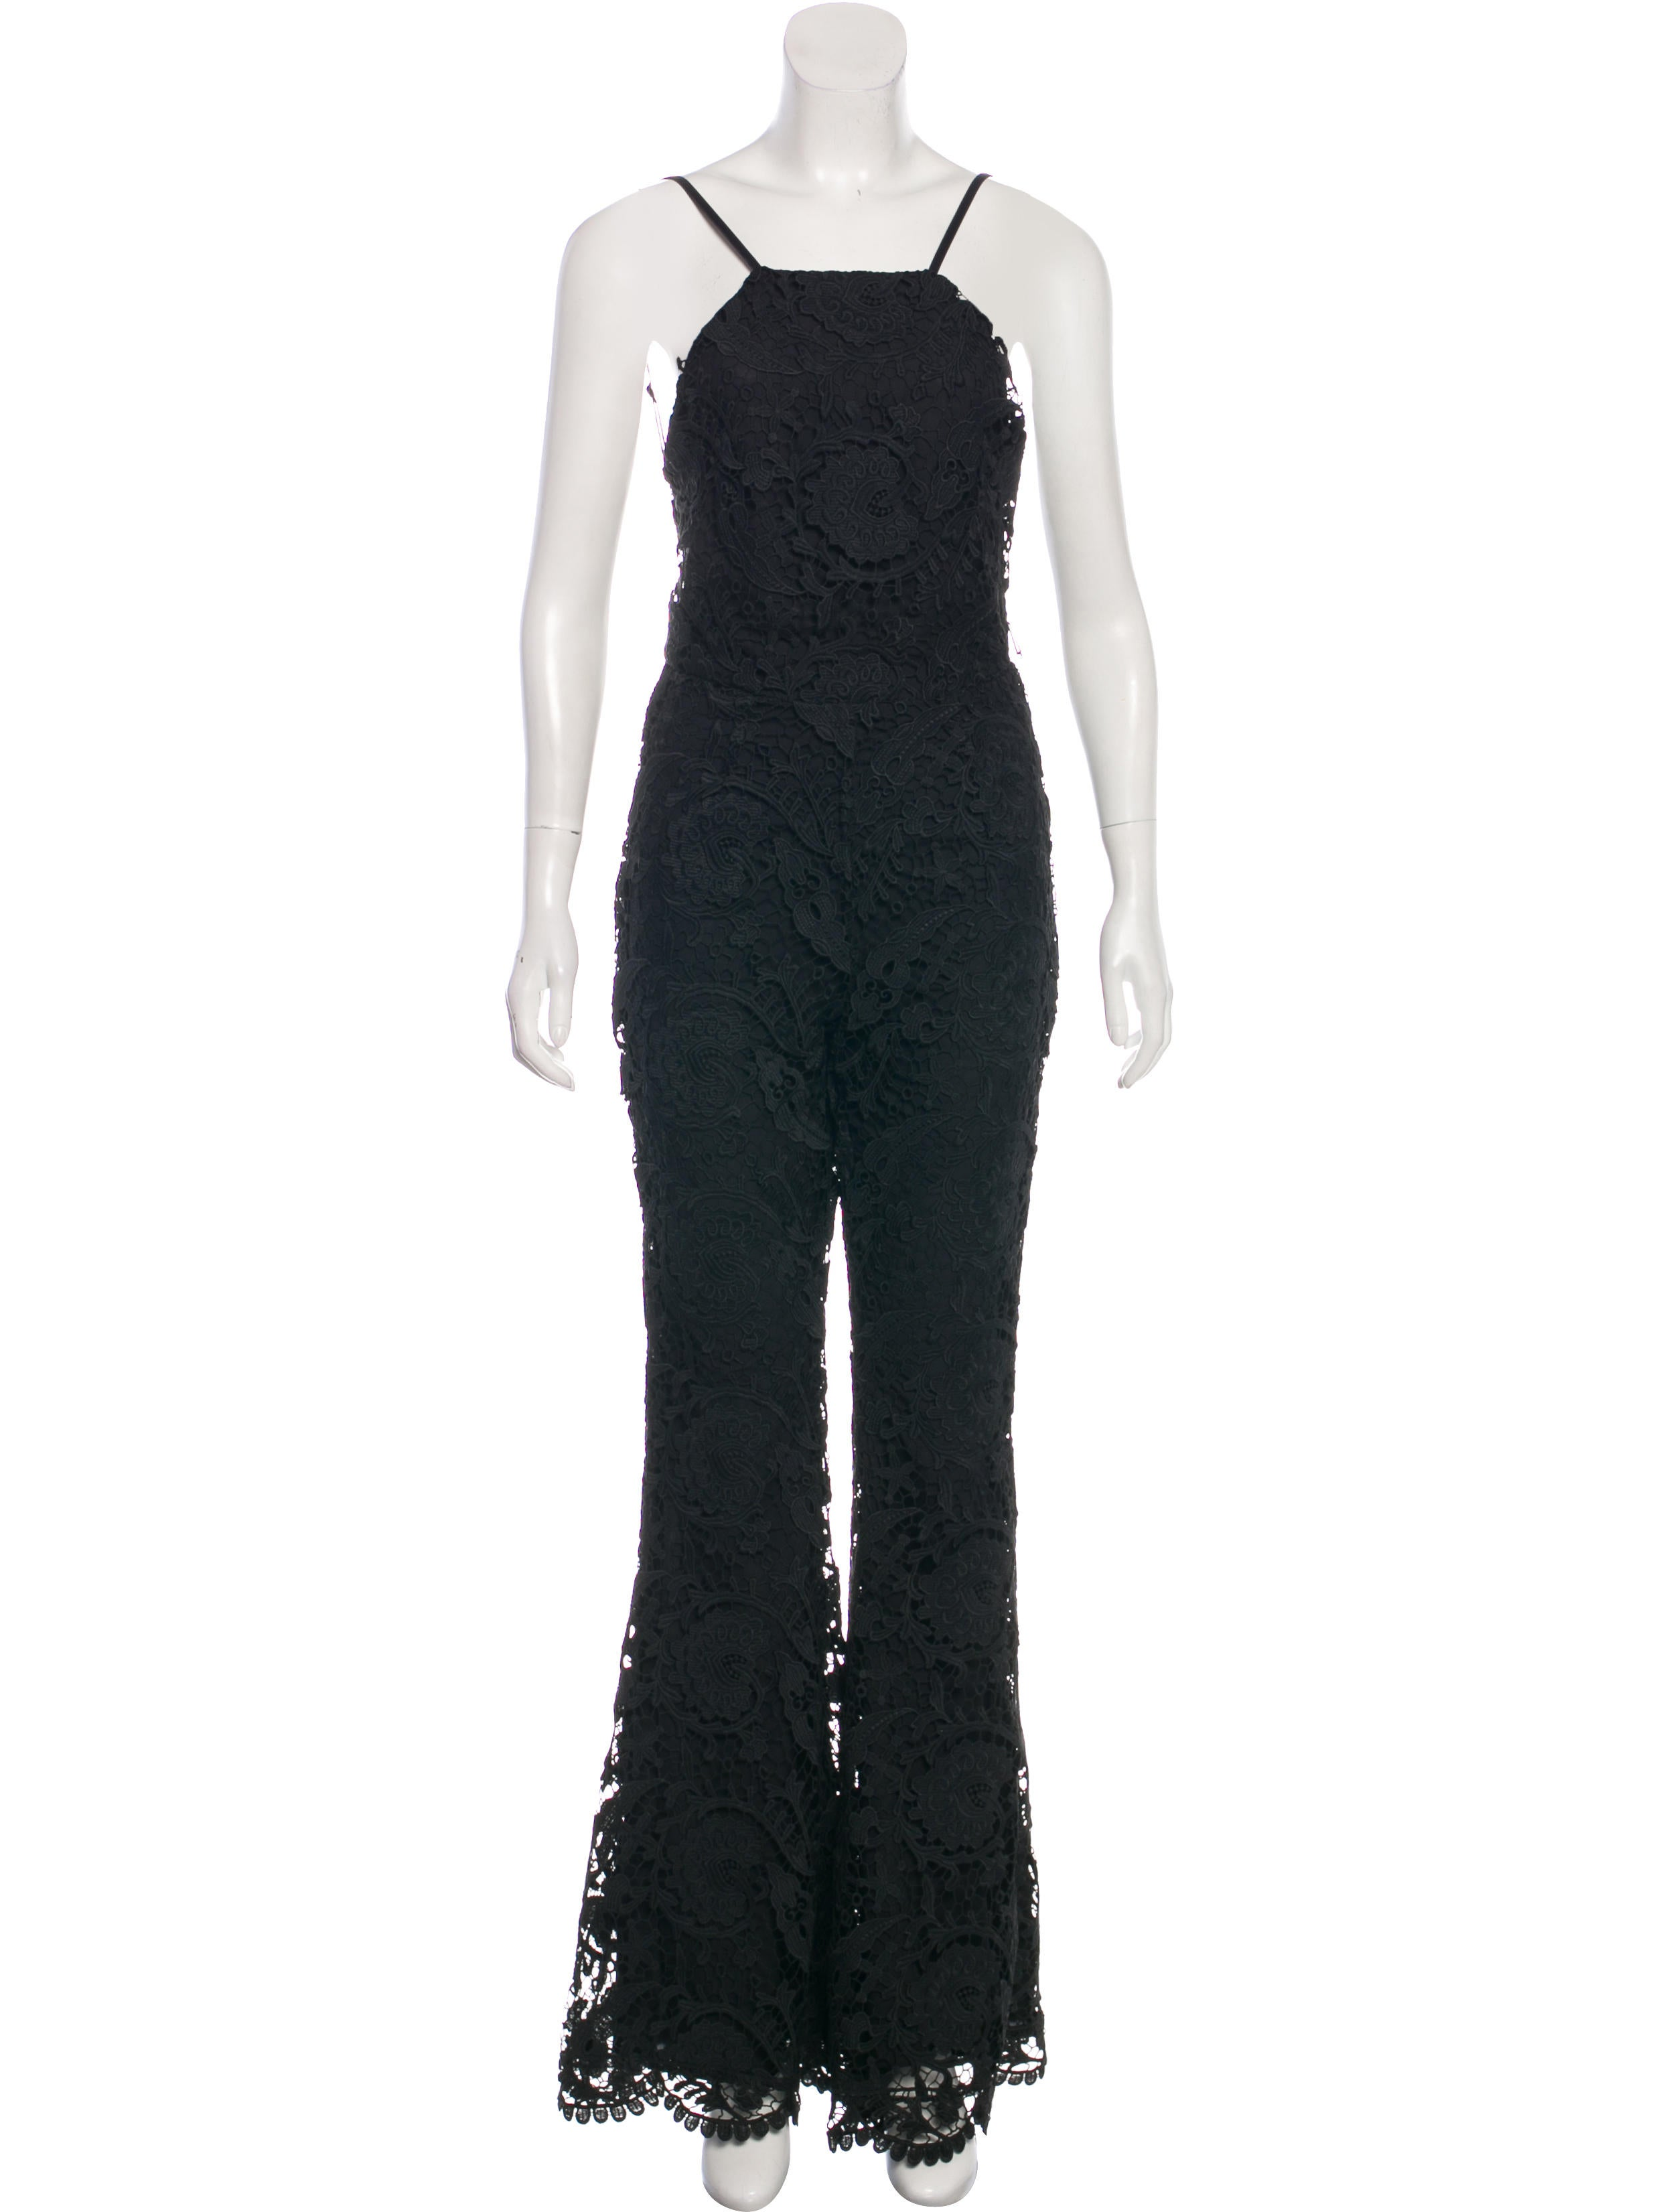 2a7002112eee Stone Cold Fox Dylan Lace Jumpsuit w  Tags - Clothing - WSFOX20437 ...